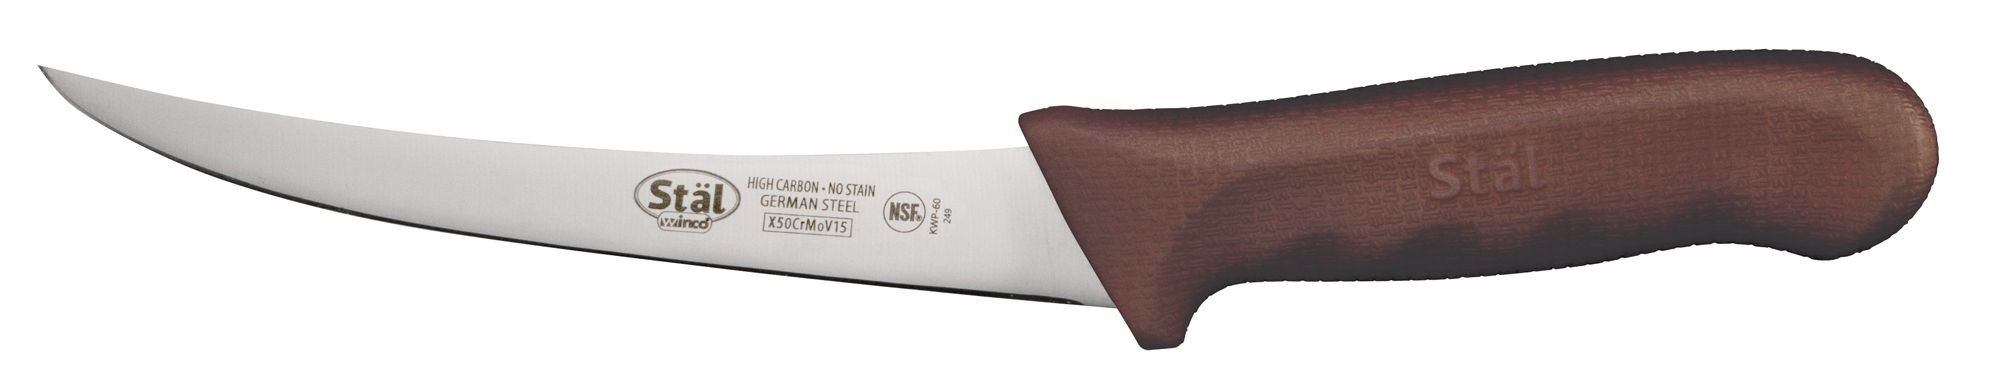 "Winco KWP-60N Curved 6"" Boning Knife with Brown Handle"